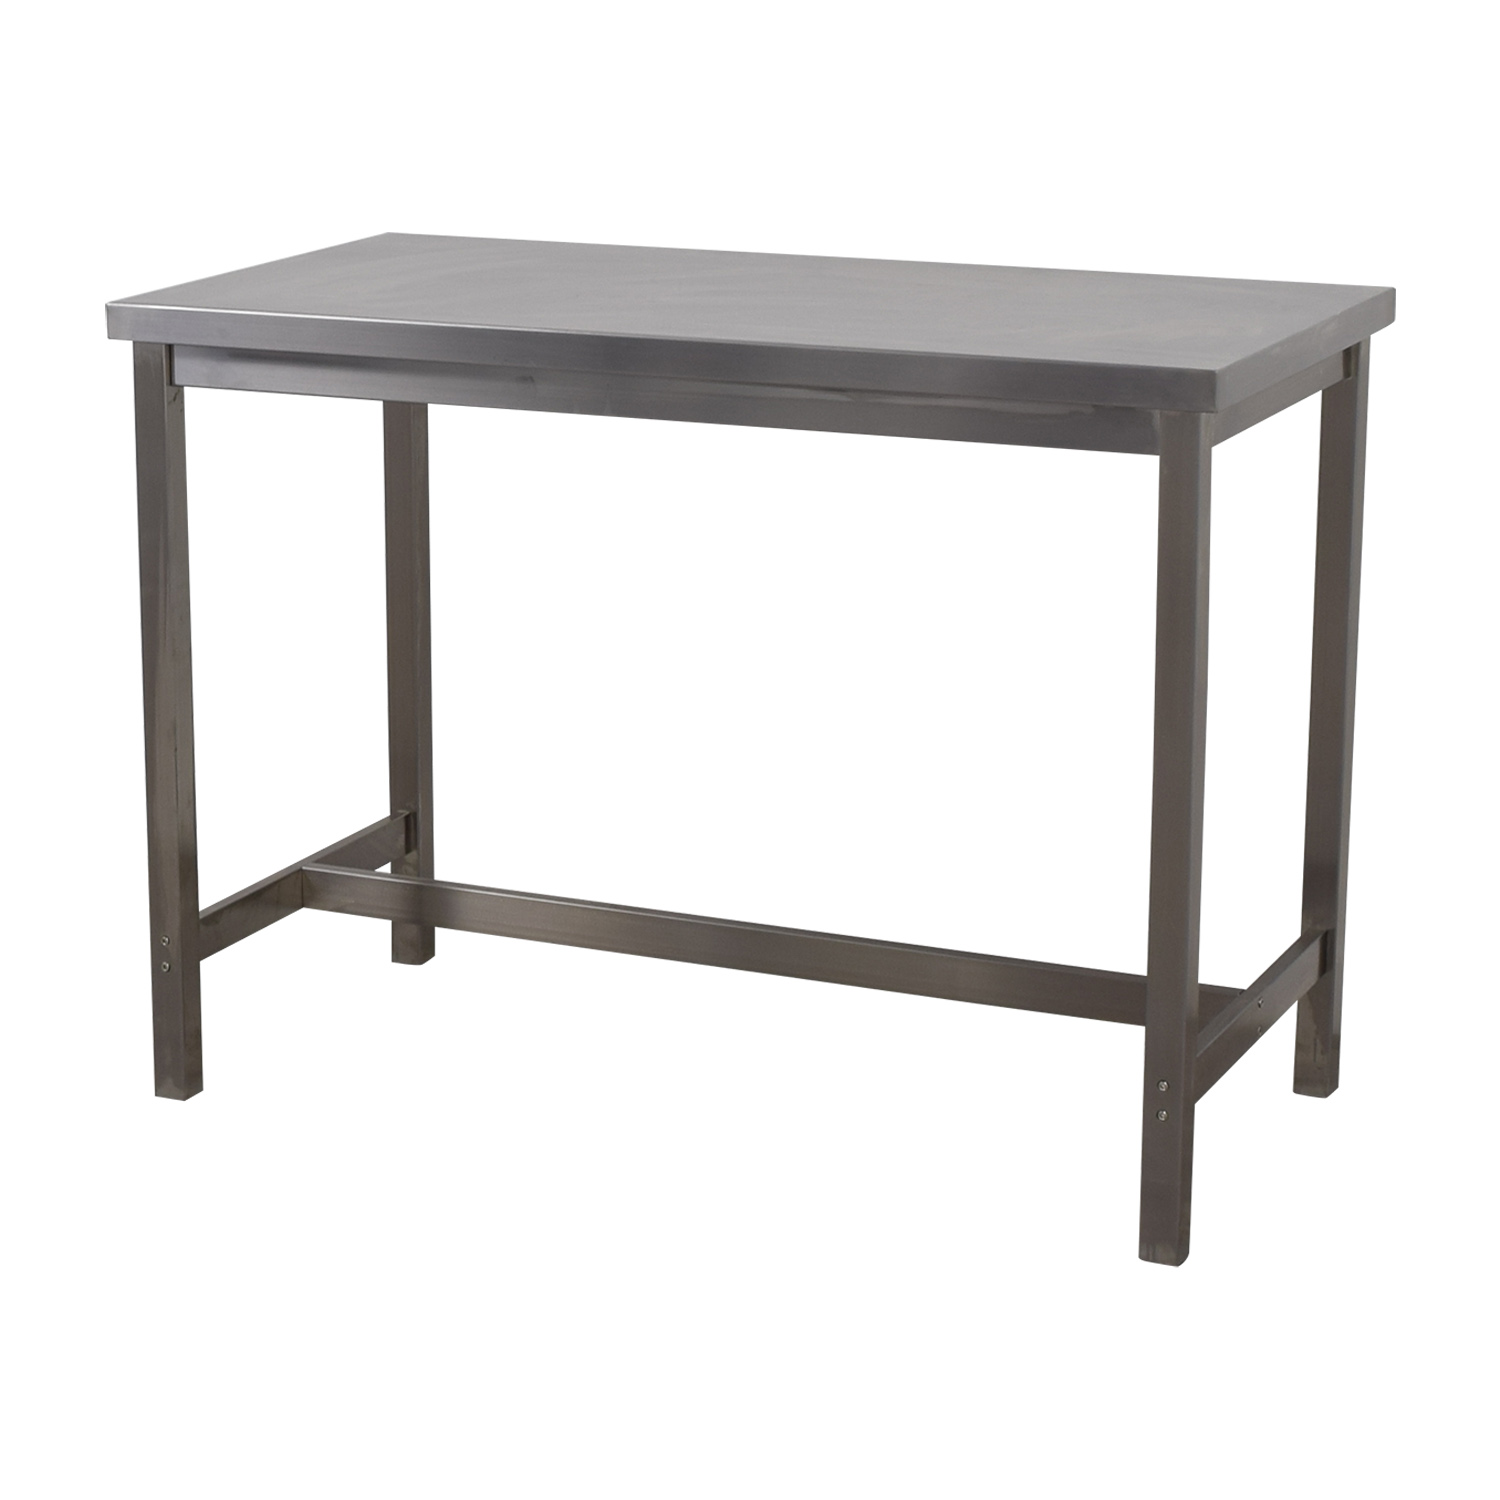 Stainless Steel Chrome Table / Tables